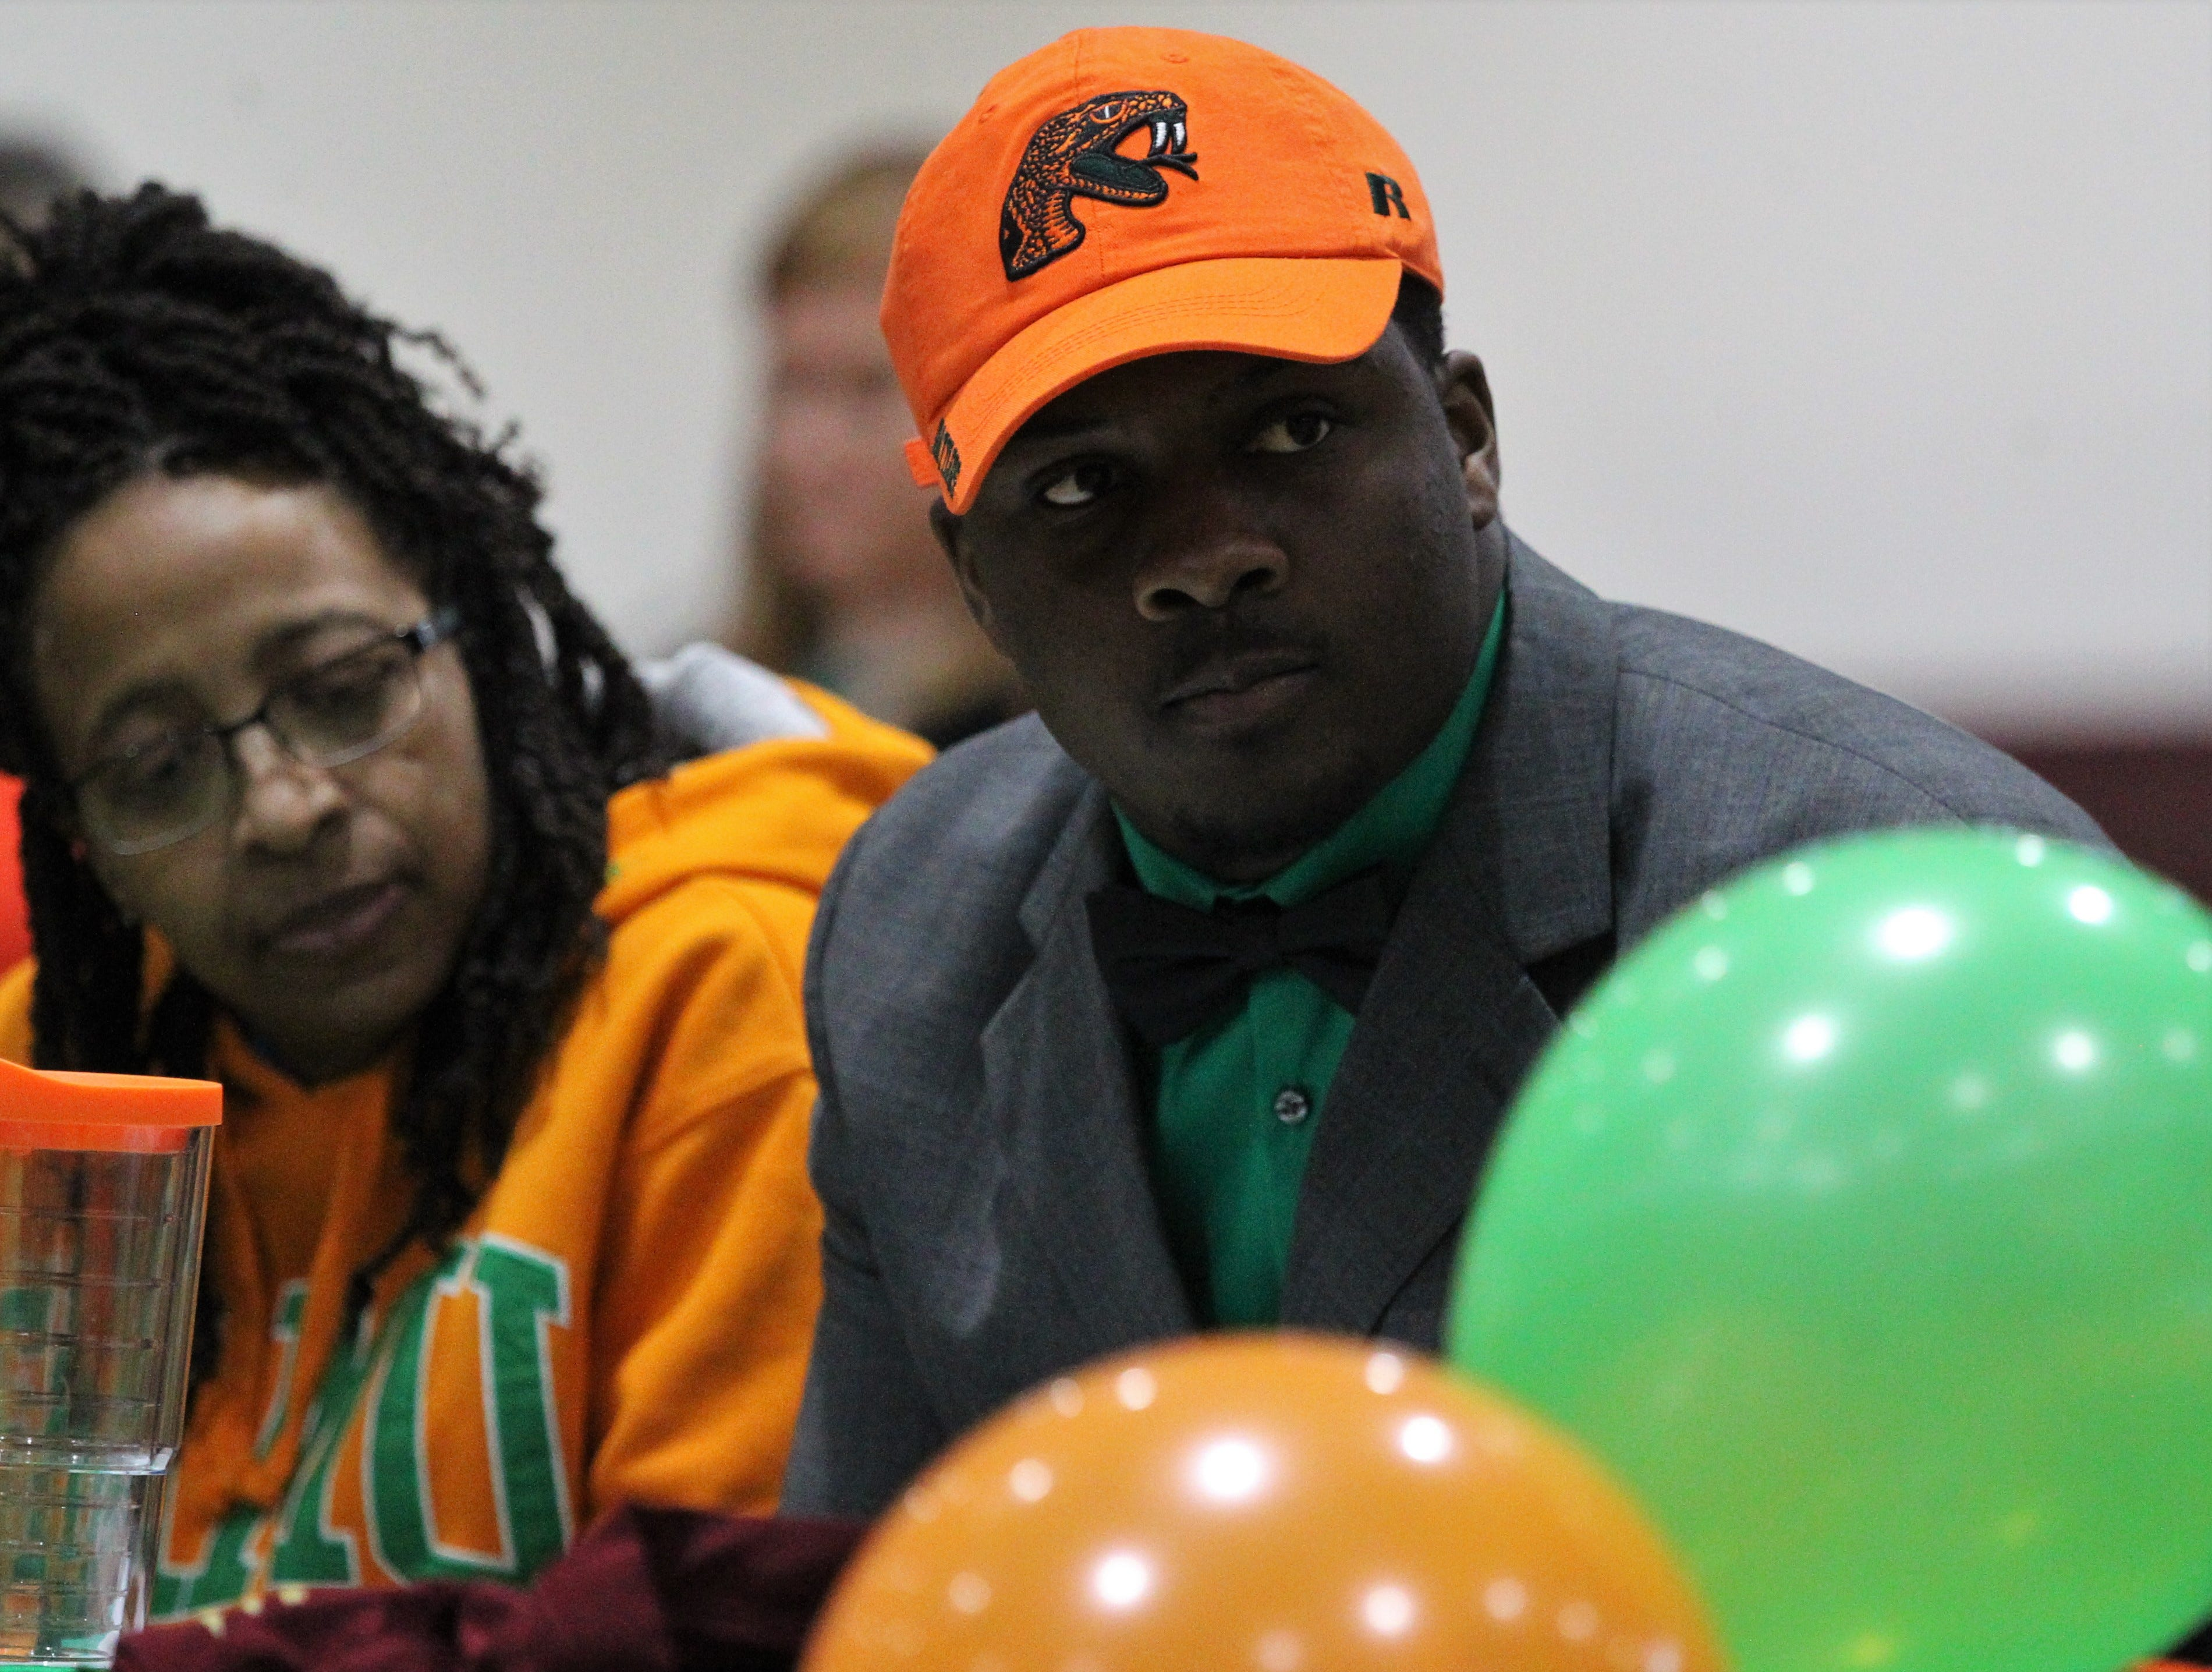 Florida High defensive tackle Jolan Gilley signed with Florida A&M during signing ceremonies on National Signing Day, Feb. 6, 2019.